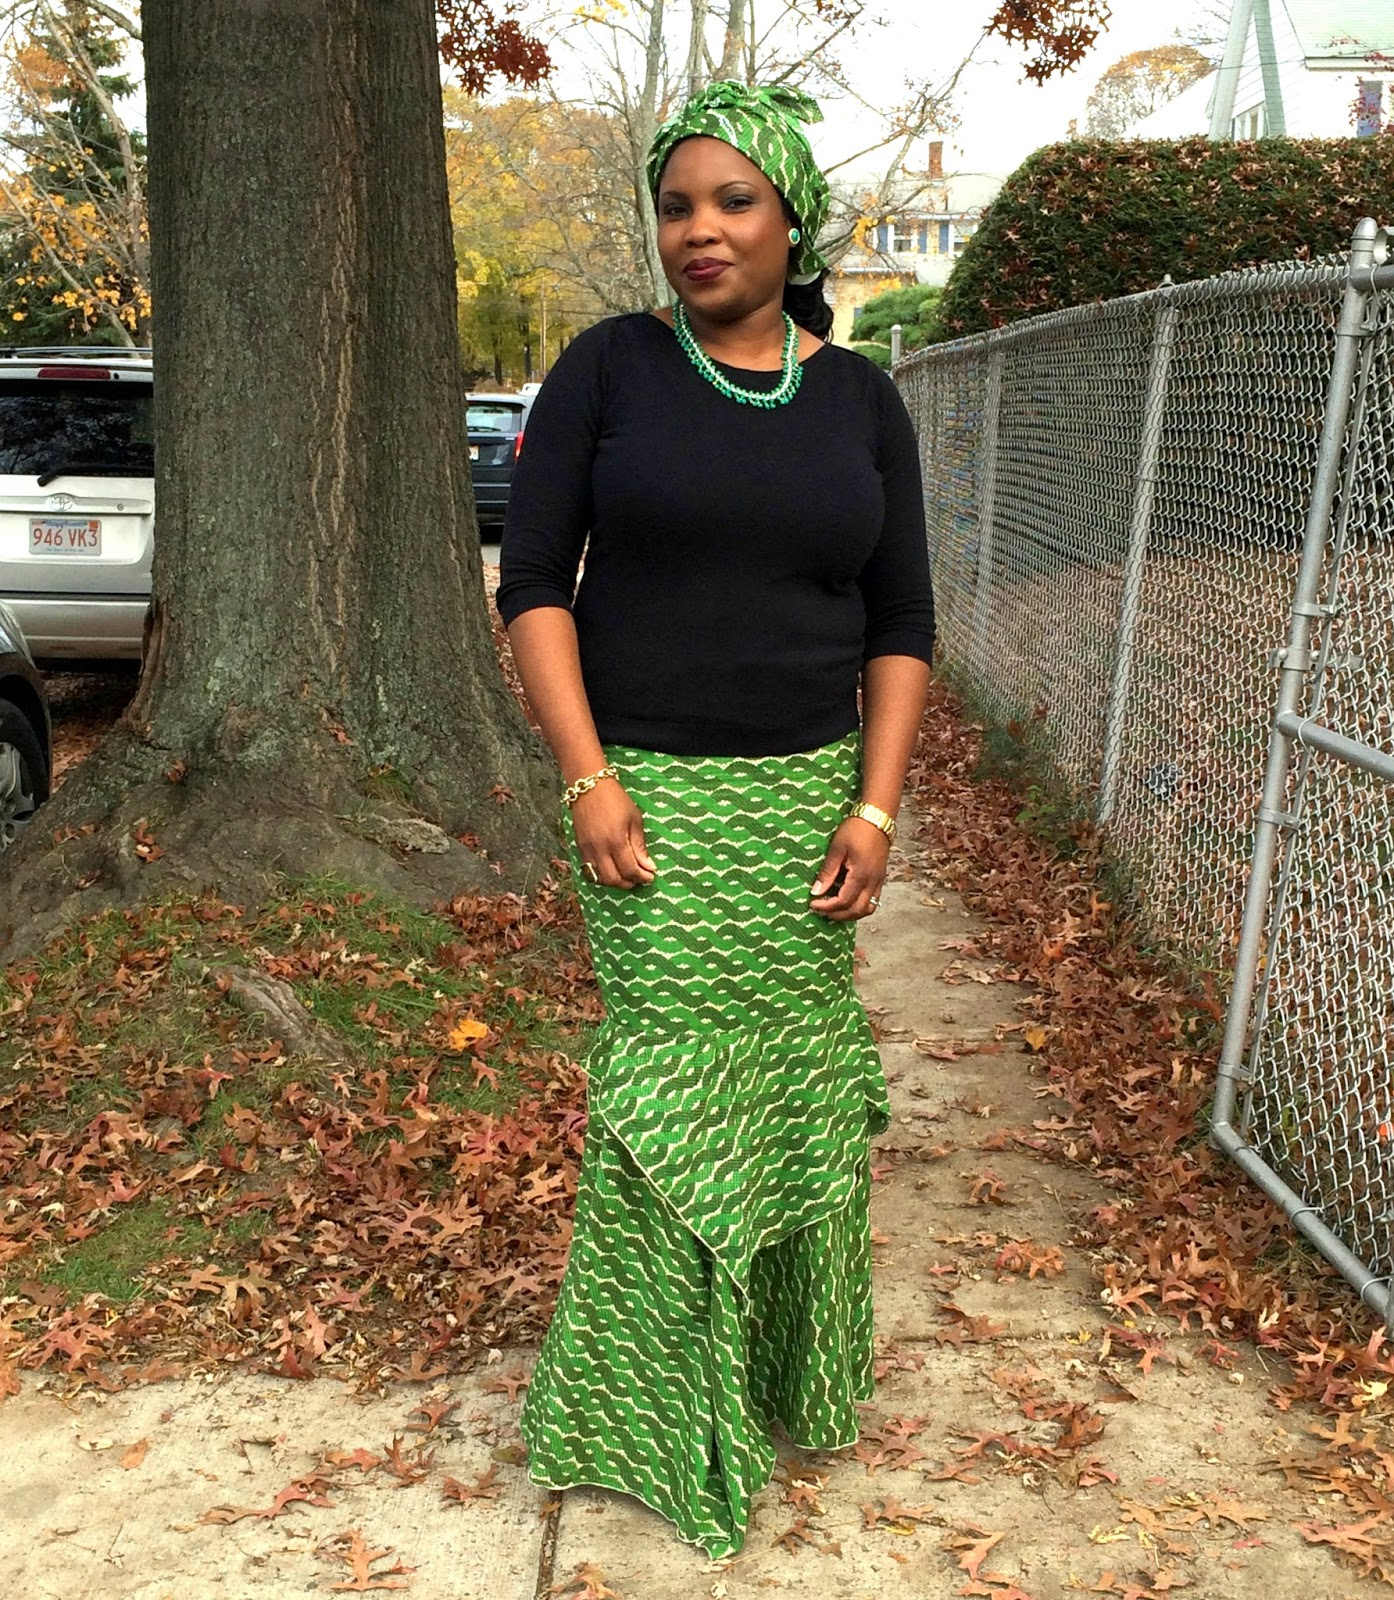 Green Skirt long, Black Sweater